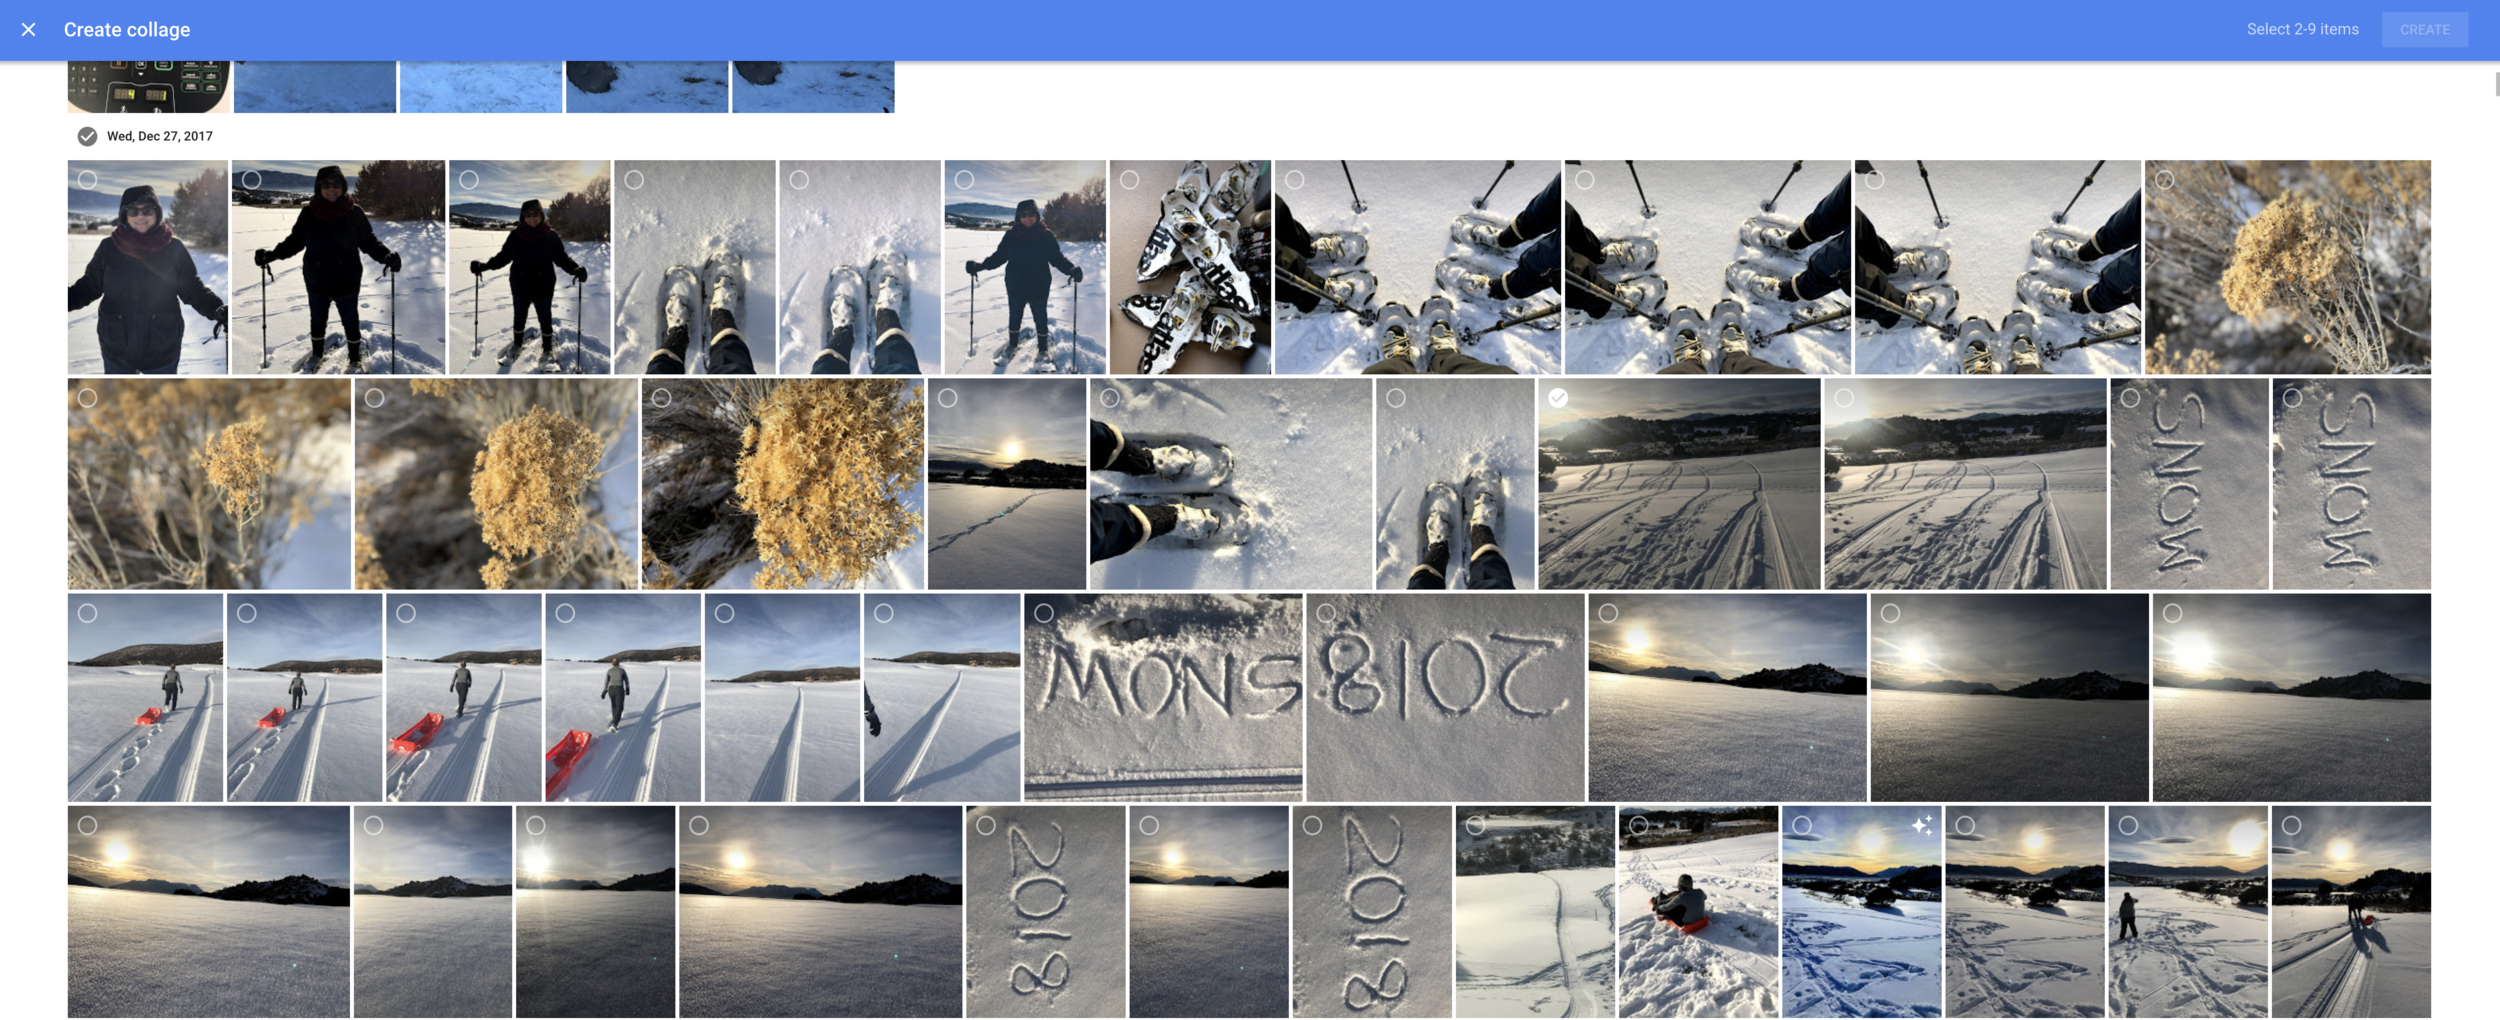 How to create a quick and easy photo collage in Google